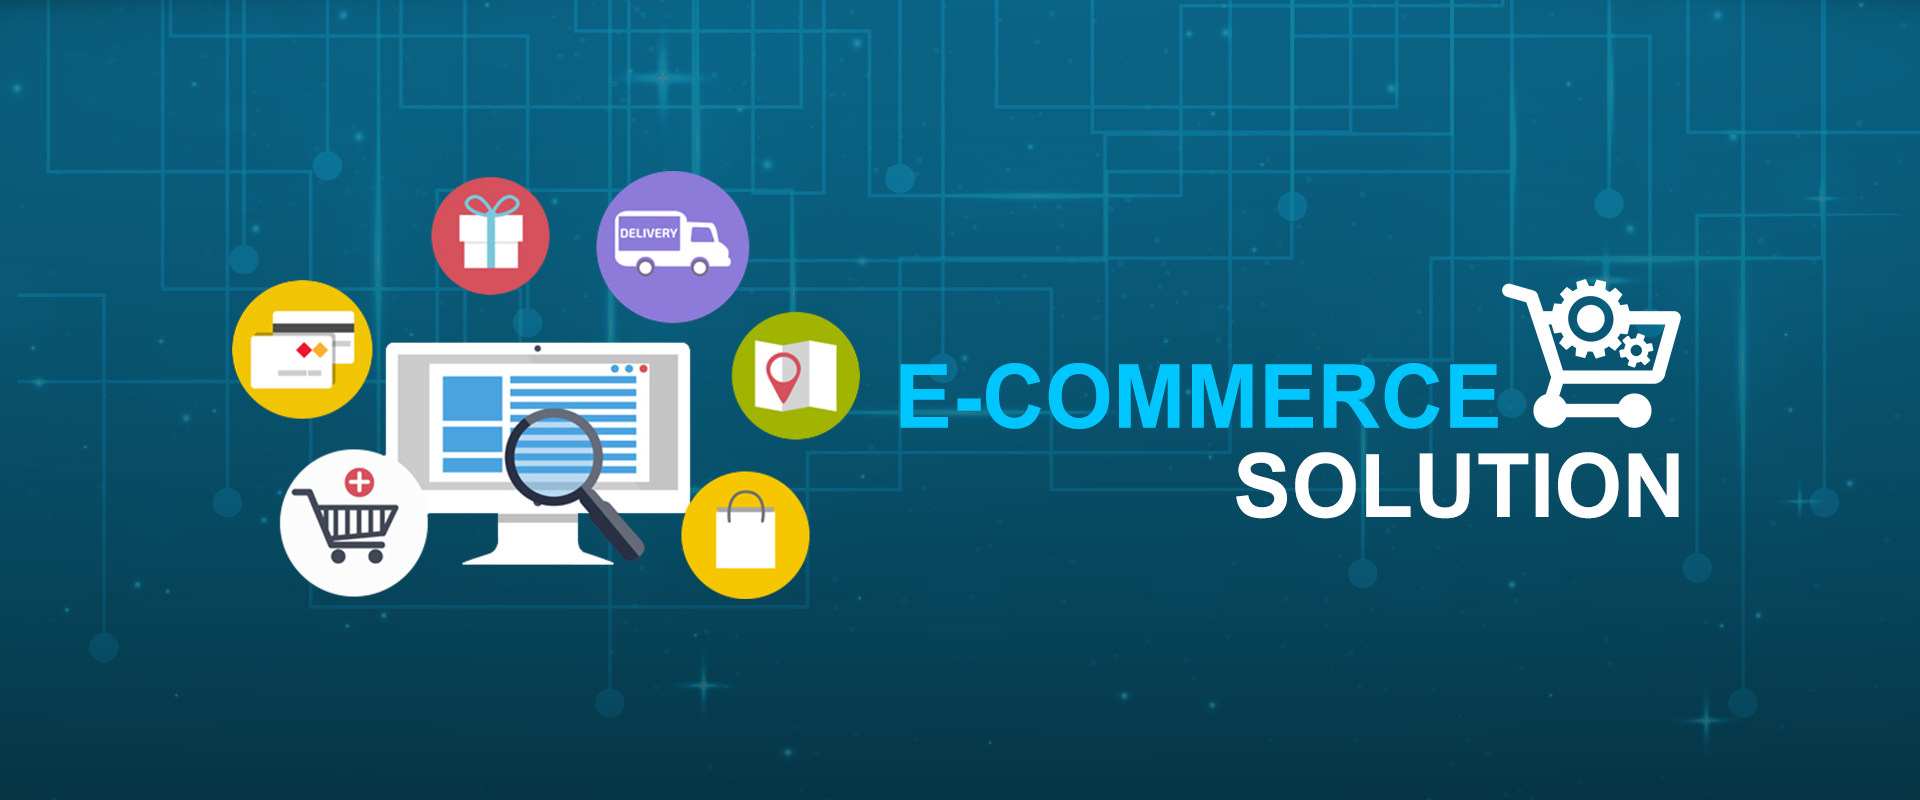 ecommerce solution company